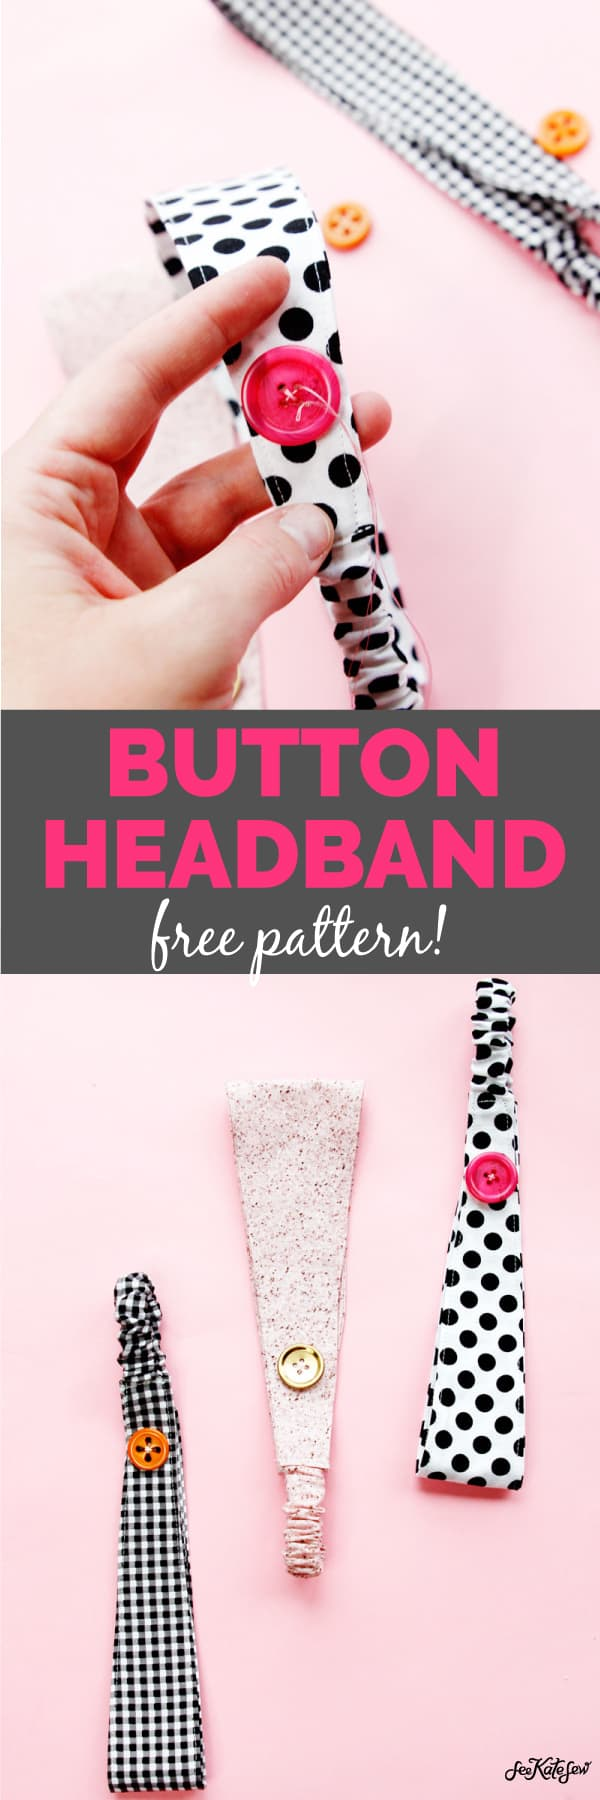 Nurse Headband with Button | Sewing Headband Pattern | Button Headband